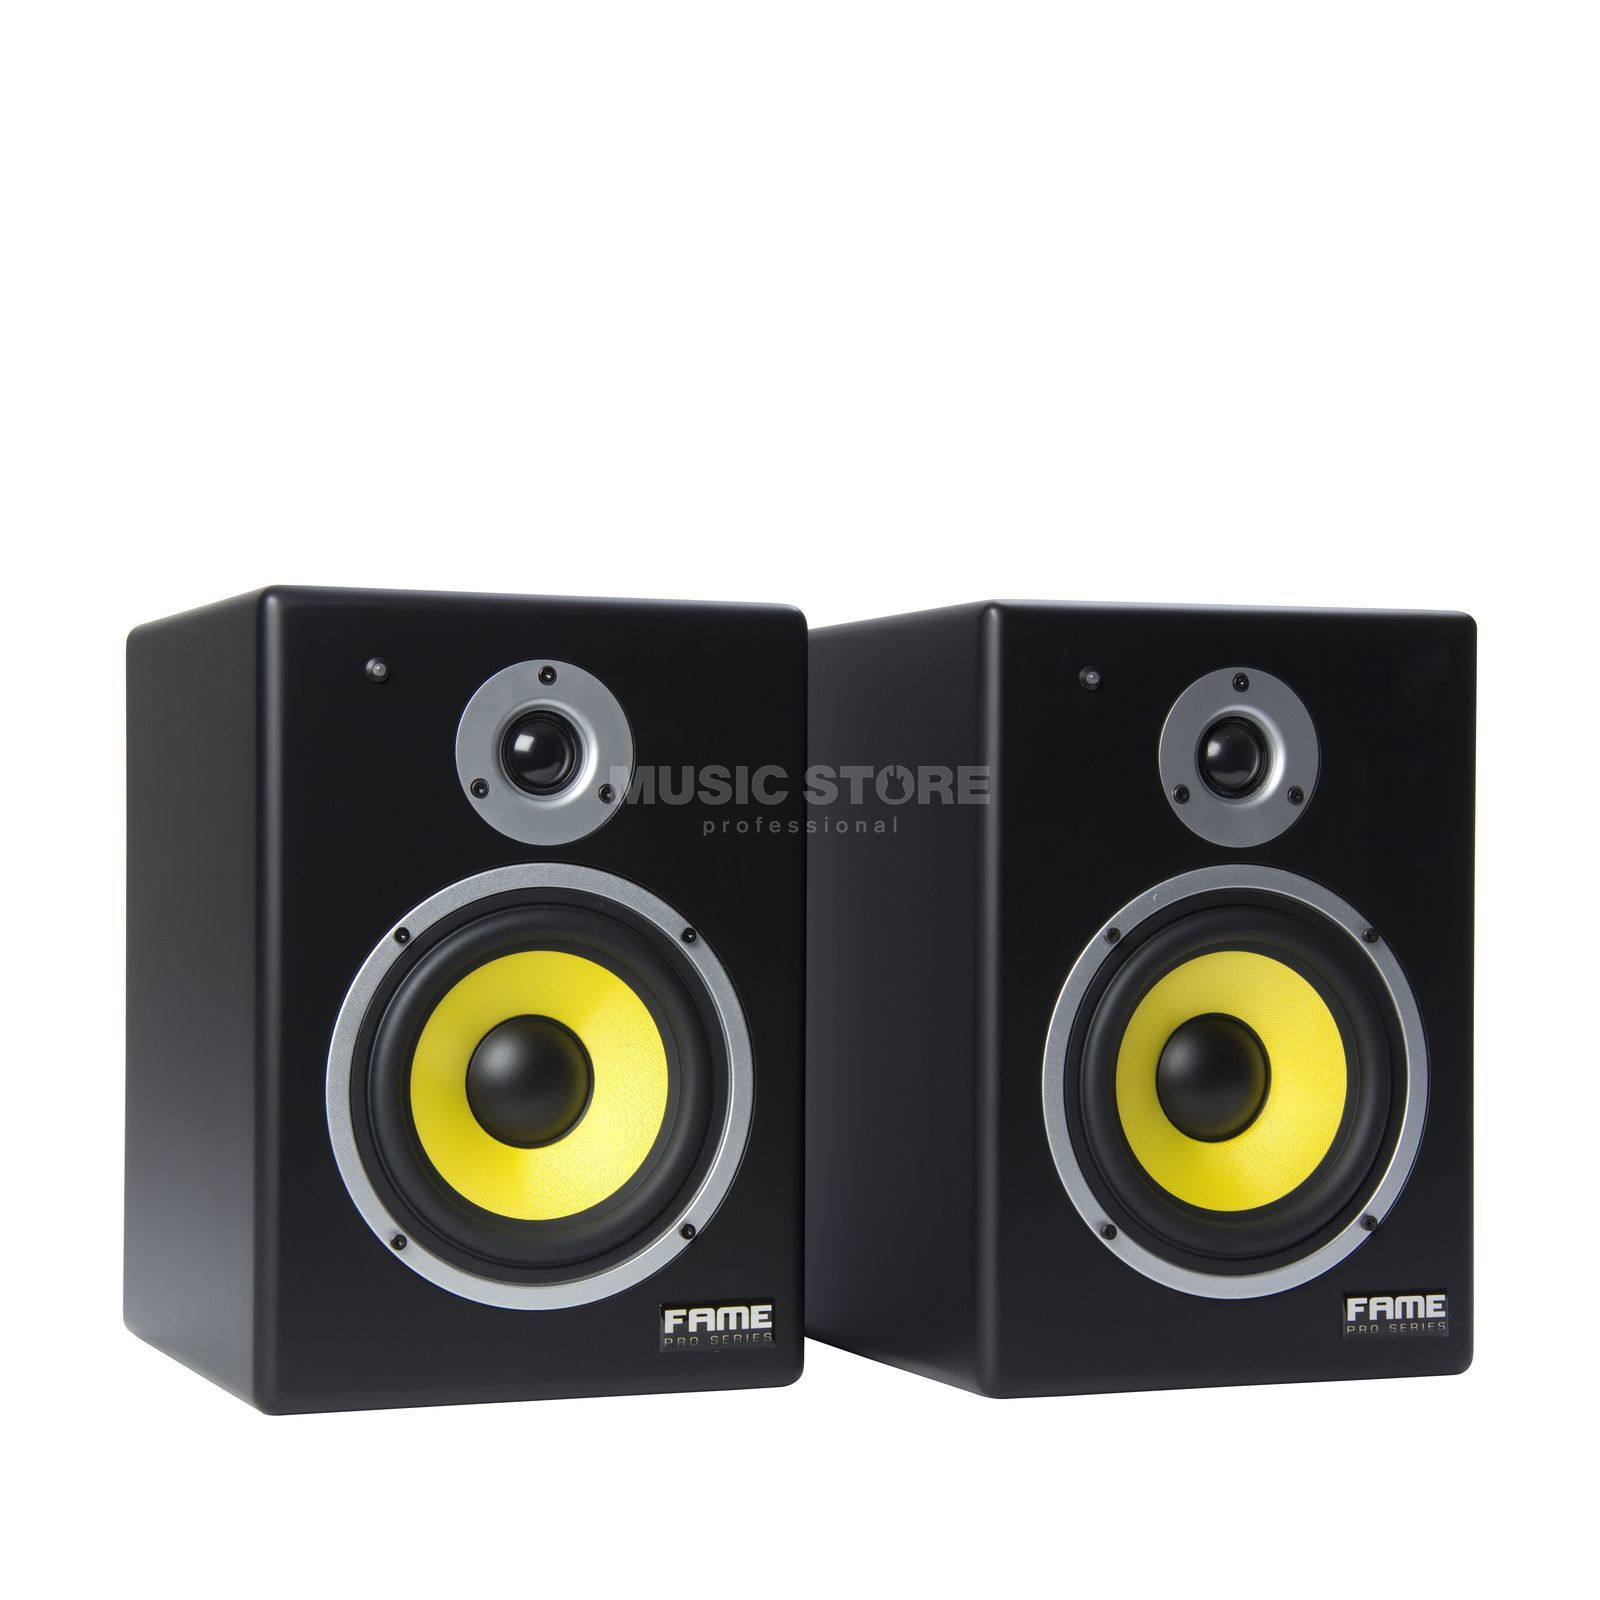 "Fame Pro Series RPM 6 active Monitor Speaker 6,5"" Product Image"